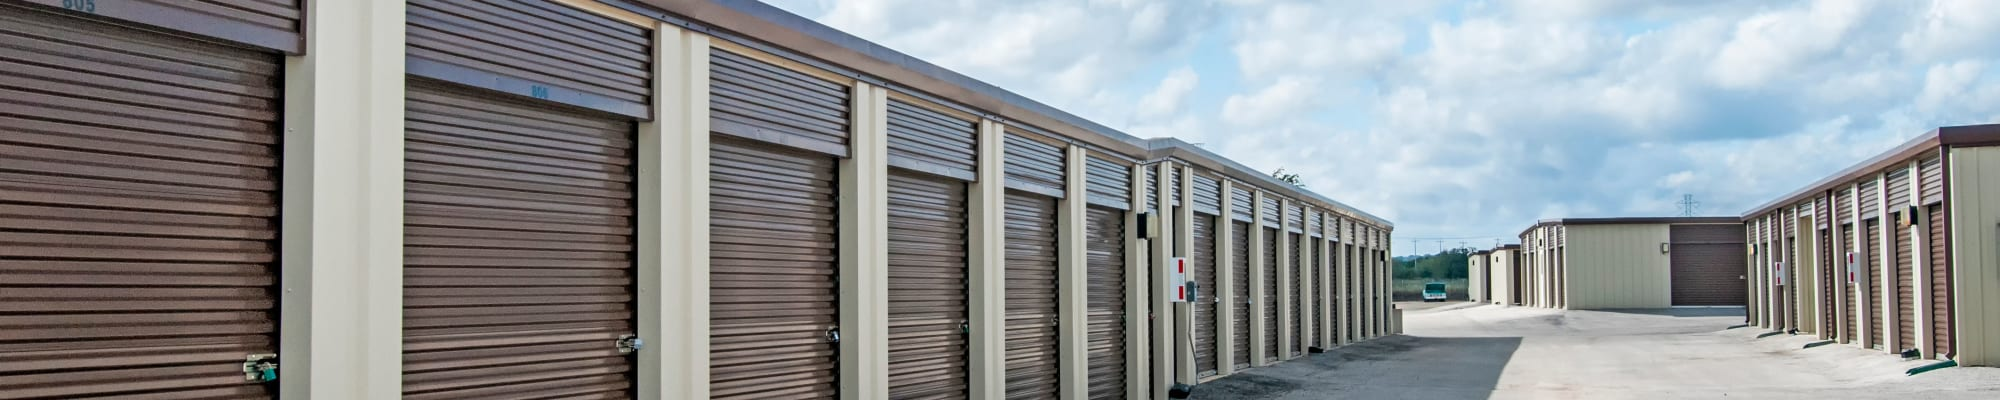 Unit sizes and prices at Lockaway Storage in San Antonio, Texas